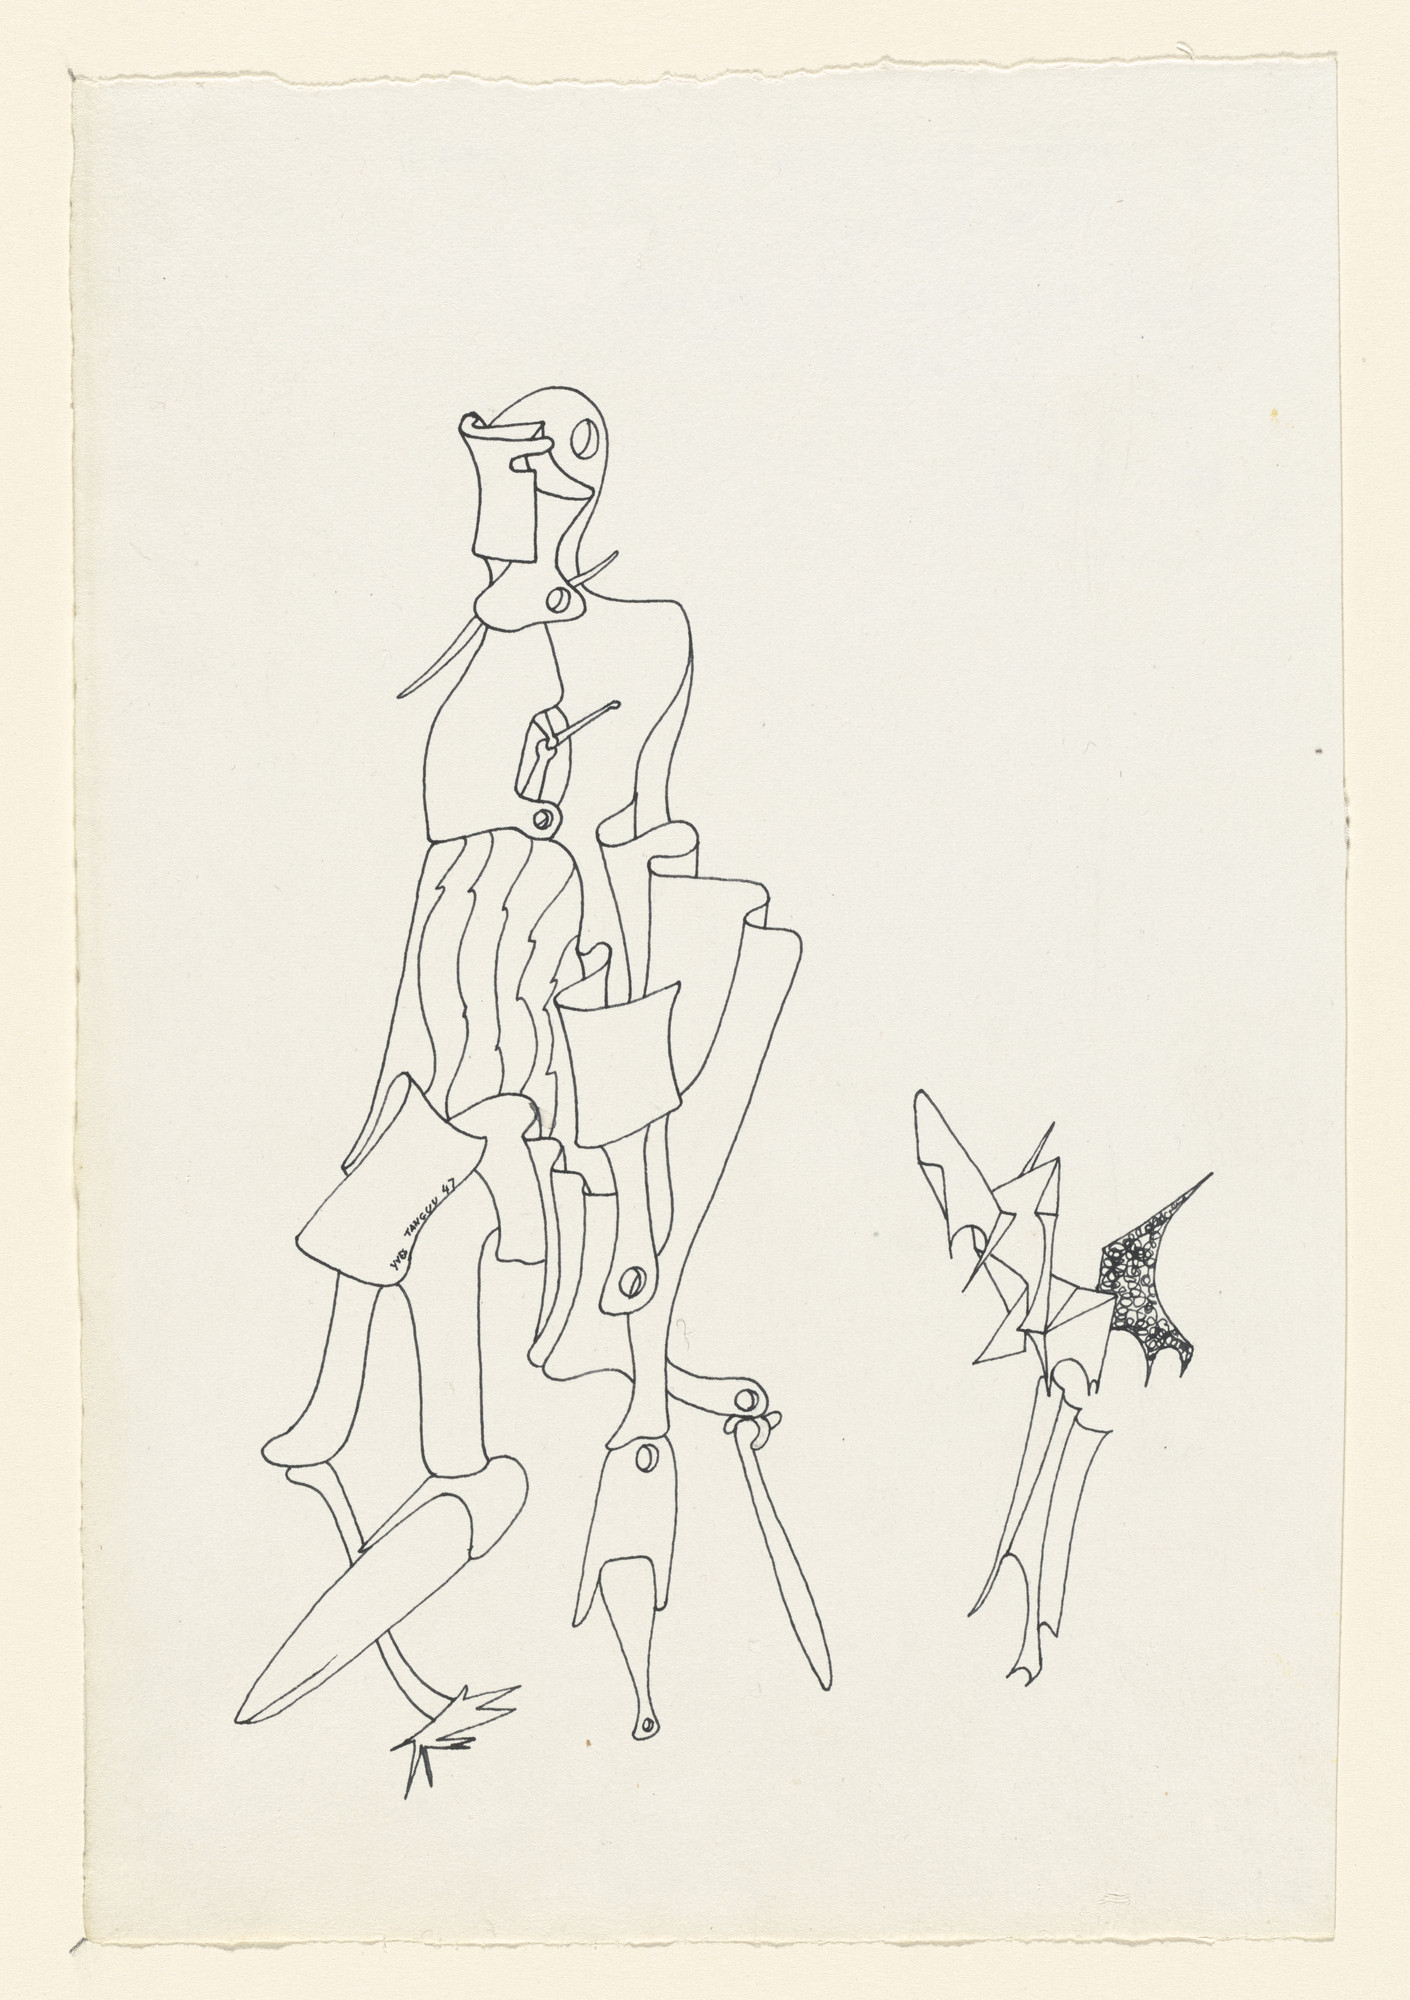 Yves Tanguy. Untitled. 1947